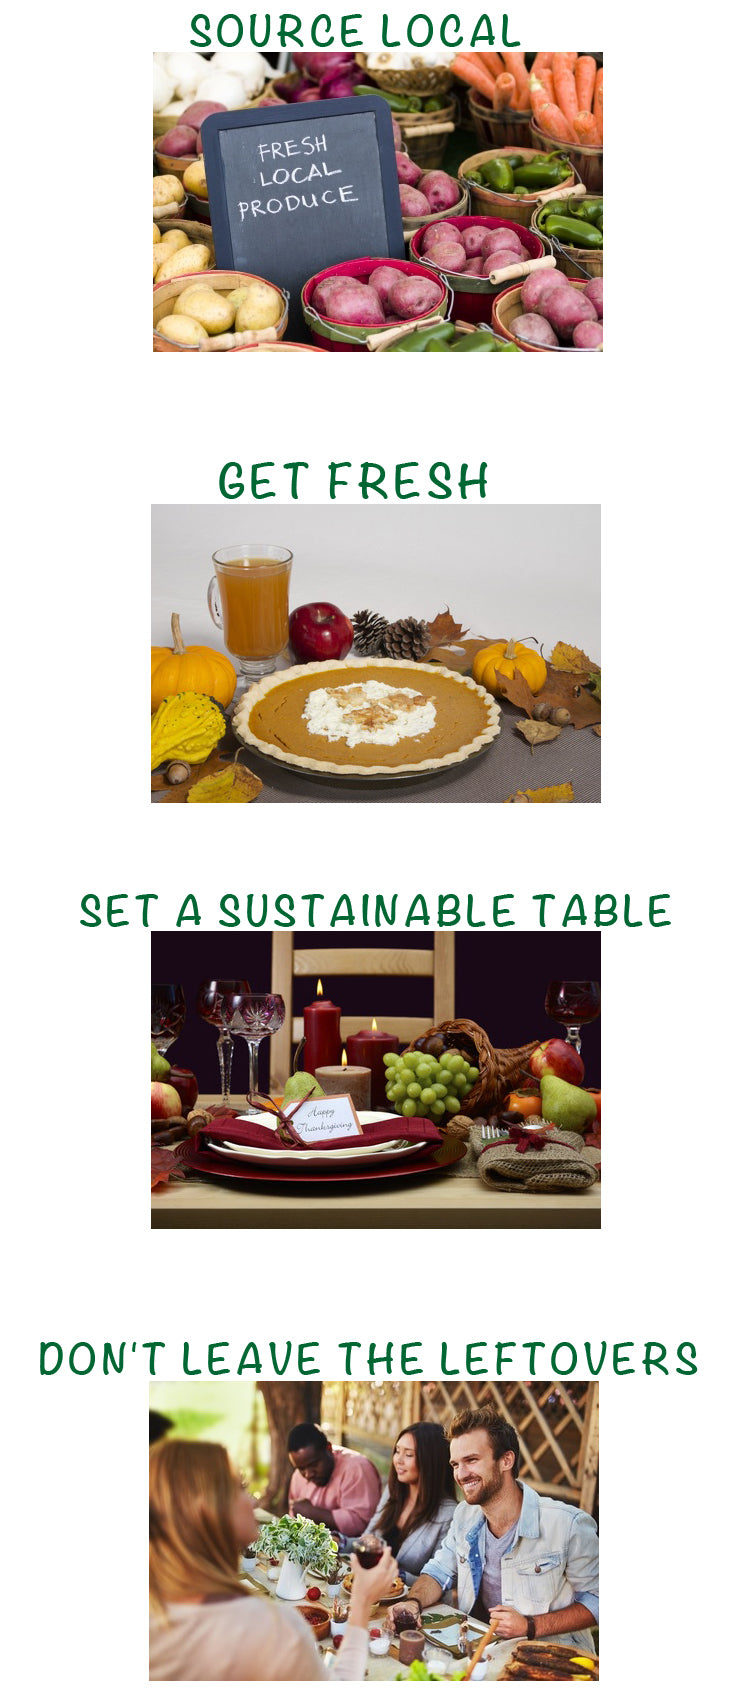 1-SOURCE LOCAL 2-GET FRESH 3-